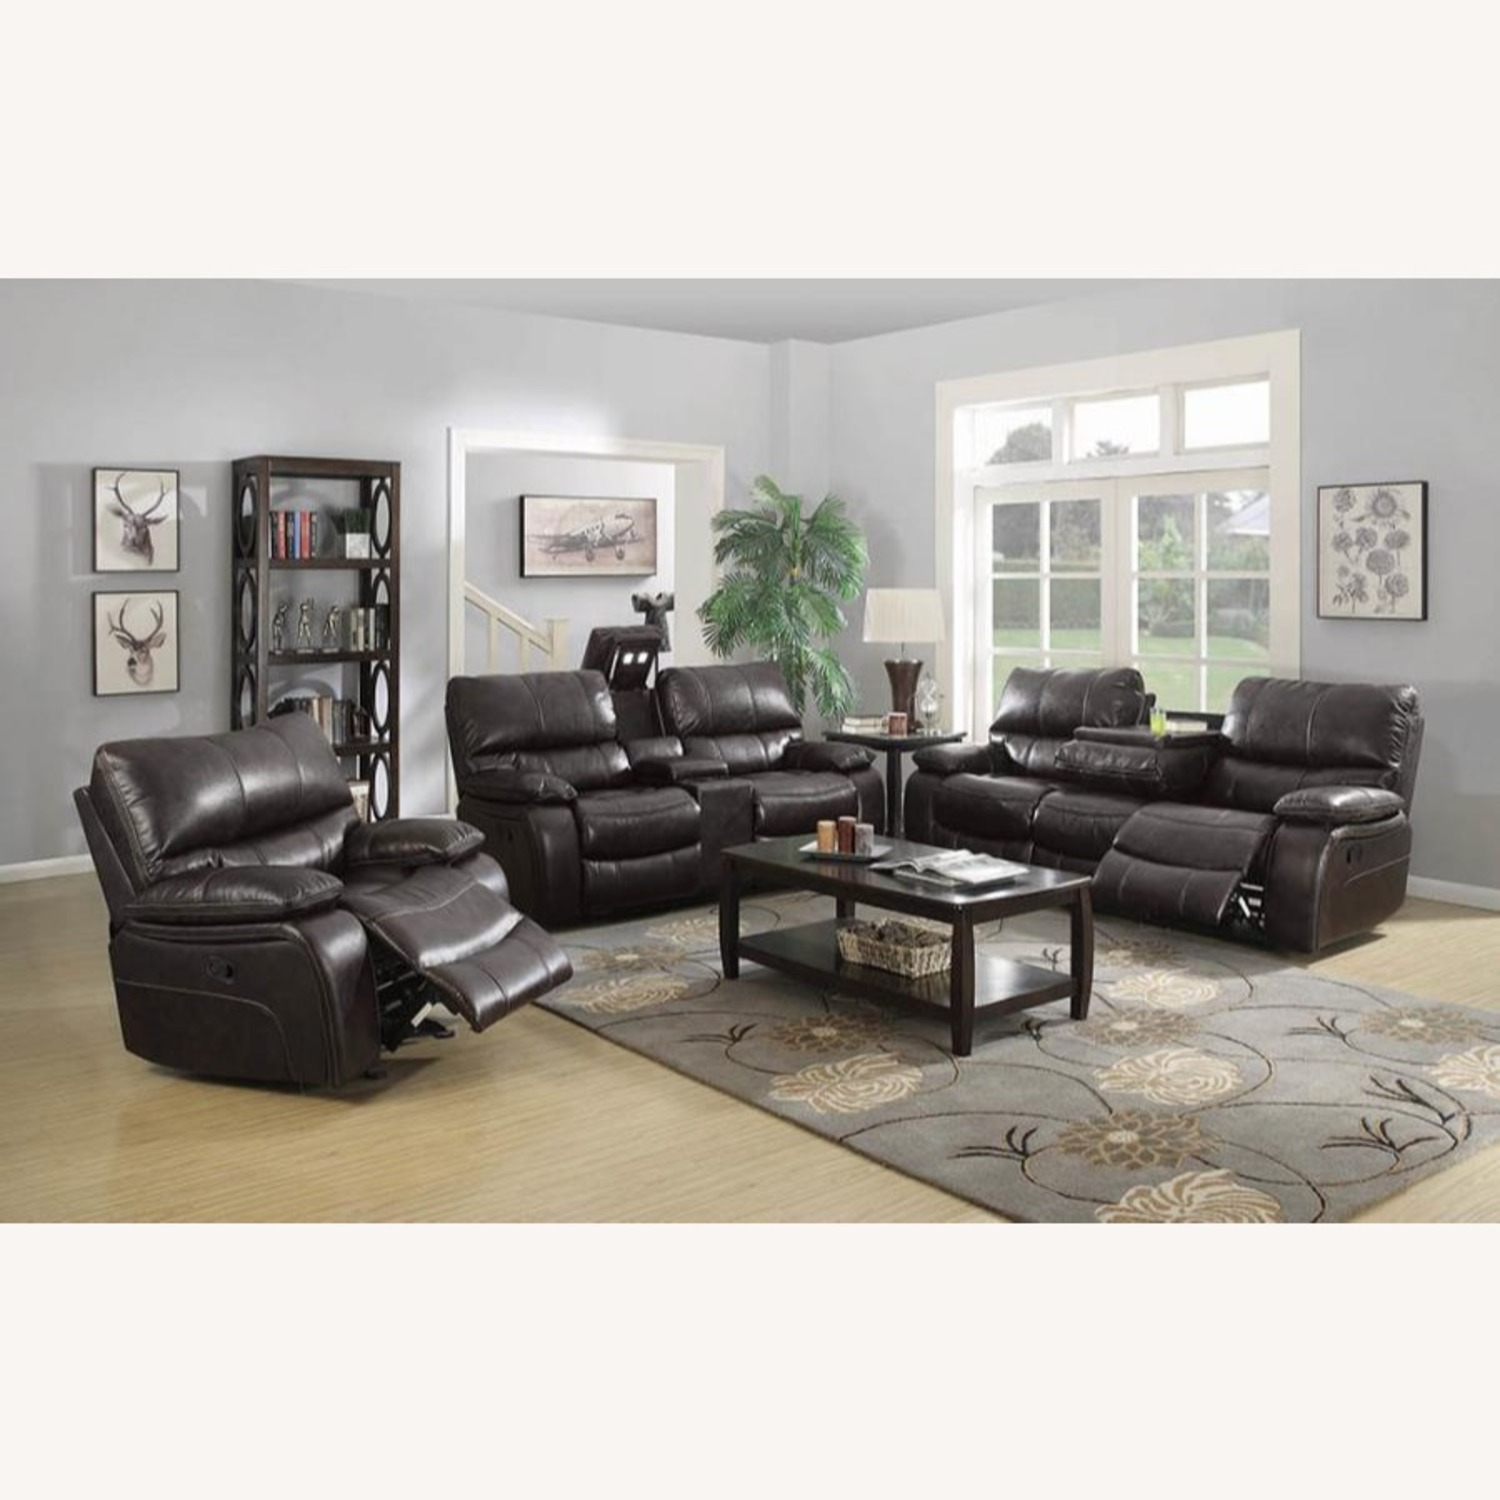 Glider Recliner W/ Scooped Seating In Dark Brown - image-7